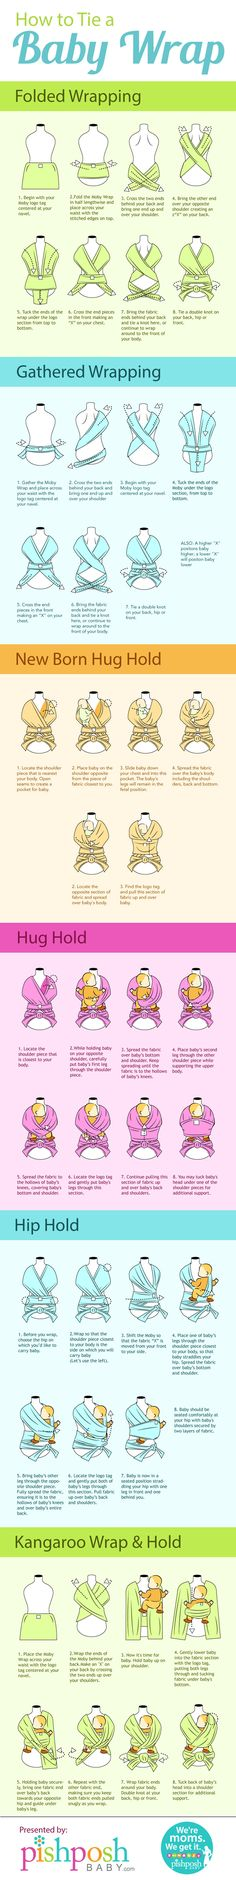 How to Wrap a Moby Baby Wrap Infographic. Topic: parenting, mother, infant, newborn, breasfeeding, moms.